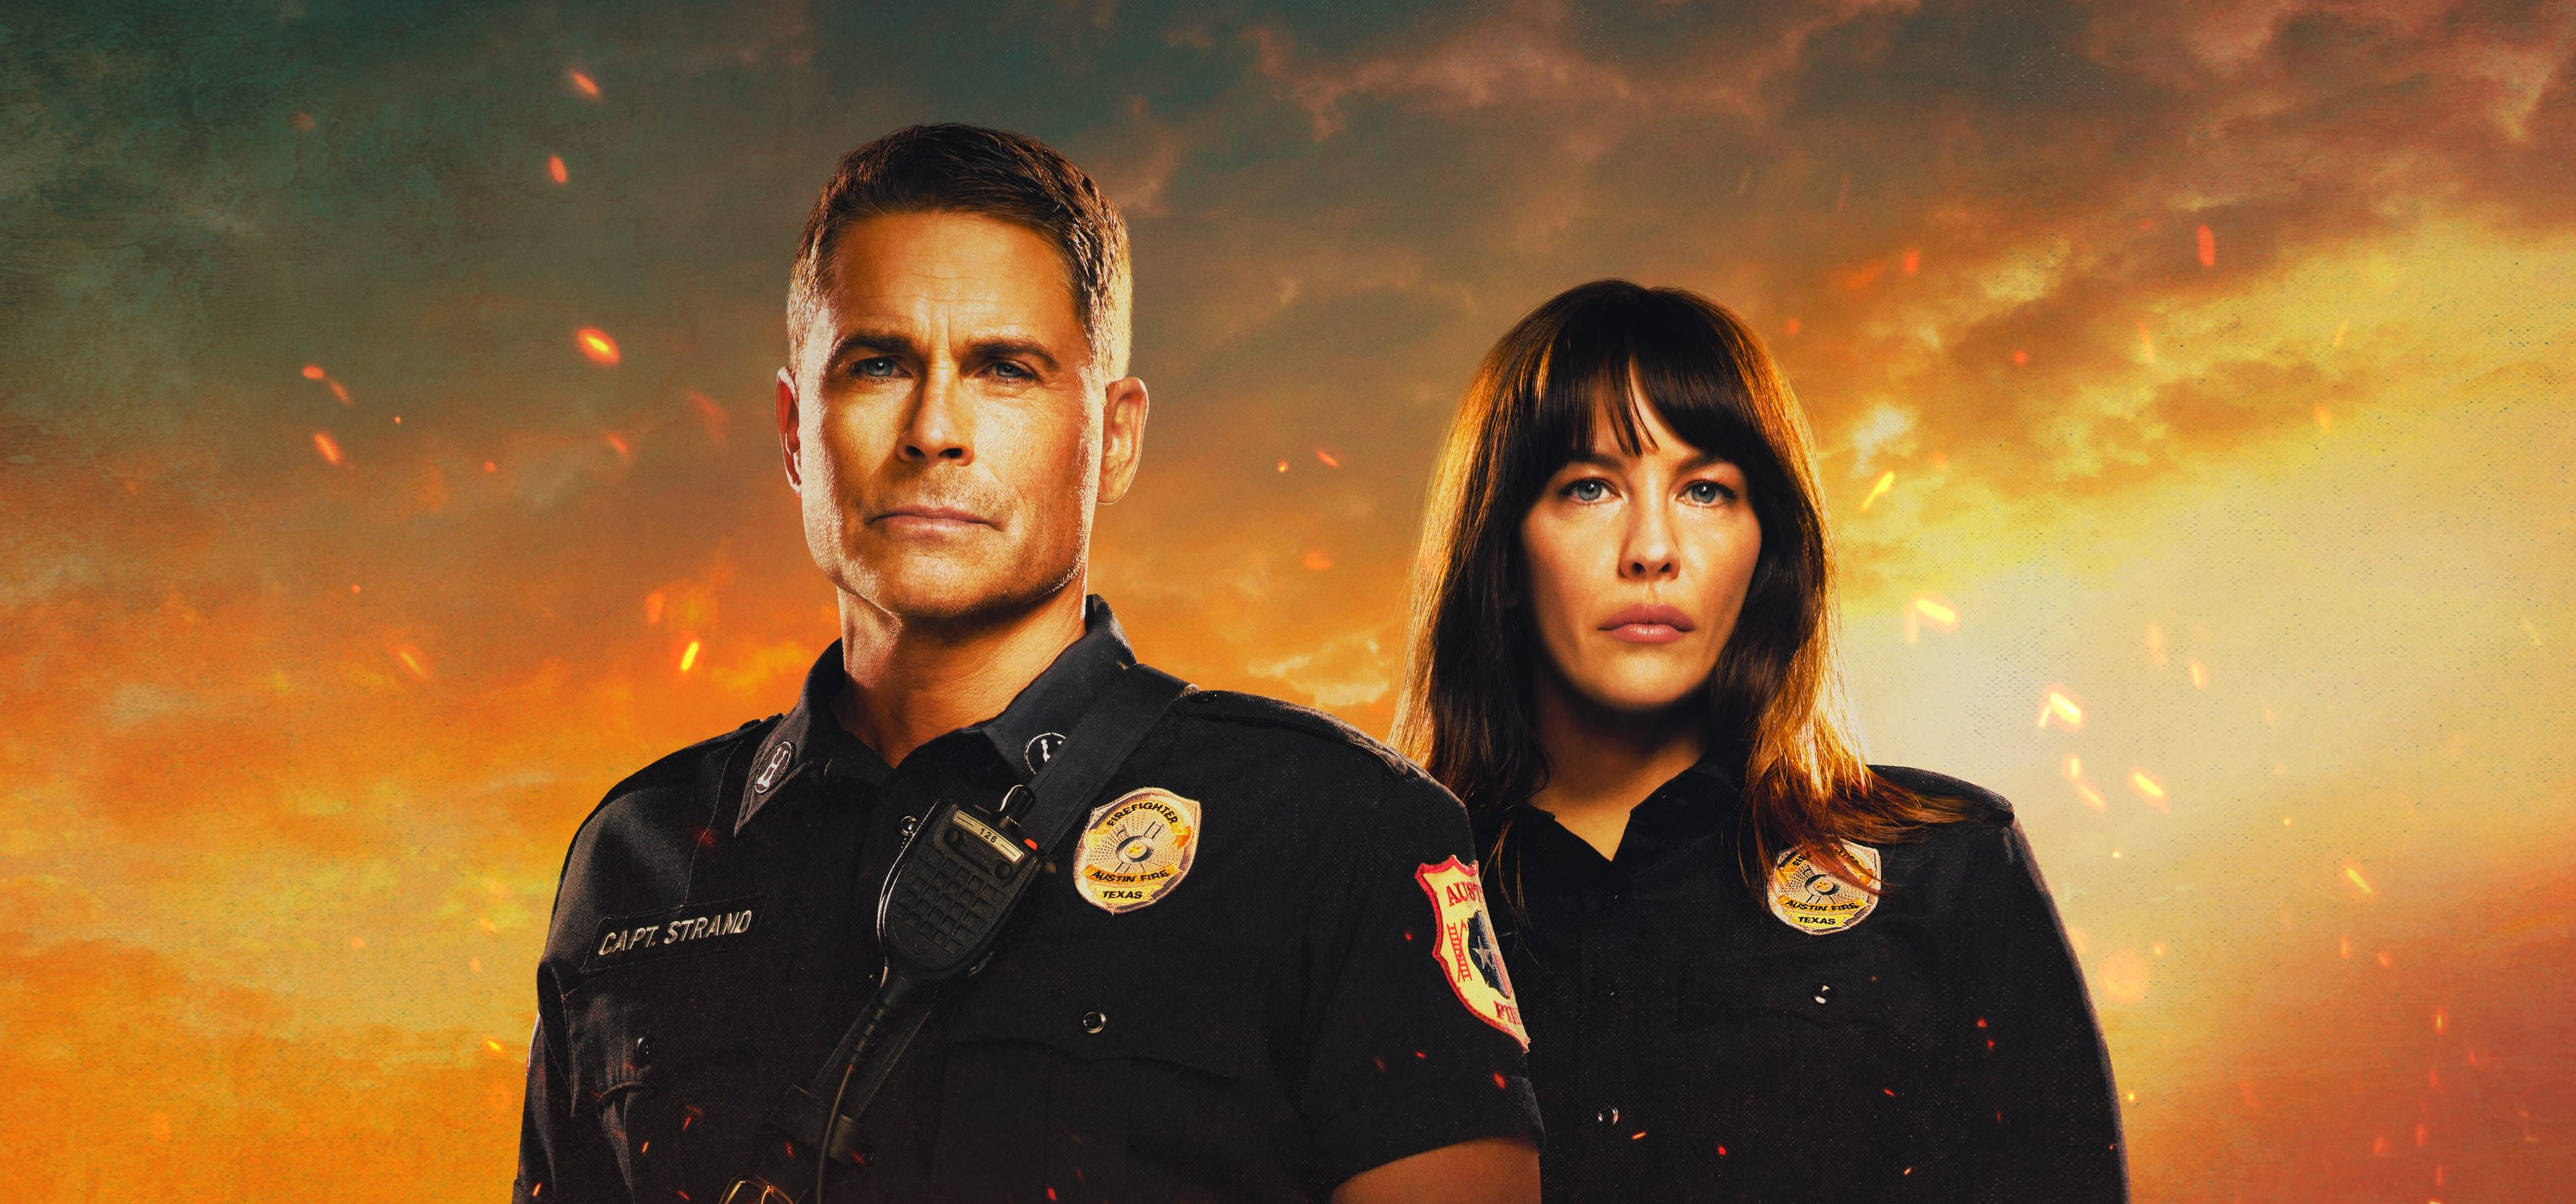 Rob Lowe and Liv Tyler Discuss their Characters in CTV's Highly-Anticipated New Series 9-1-1: LONE STAR, Premiering Jan. 19